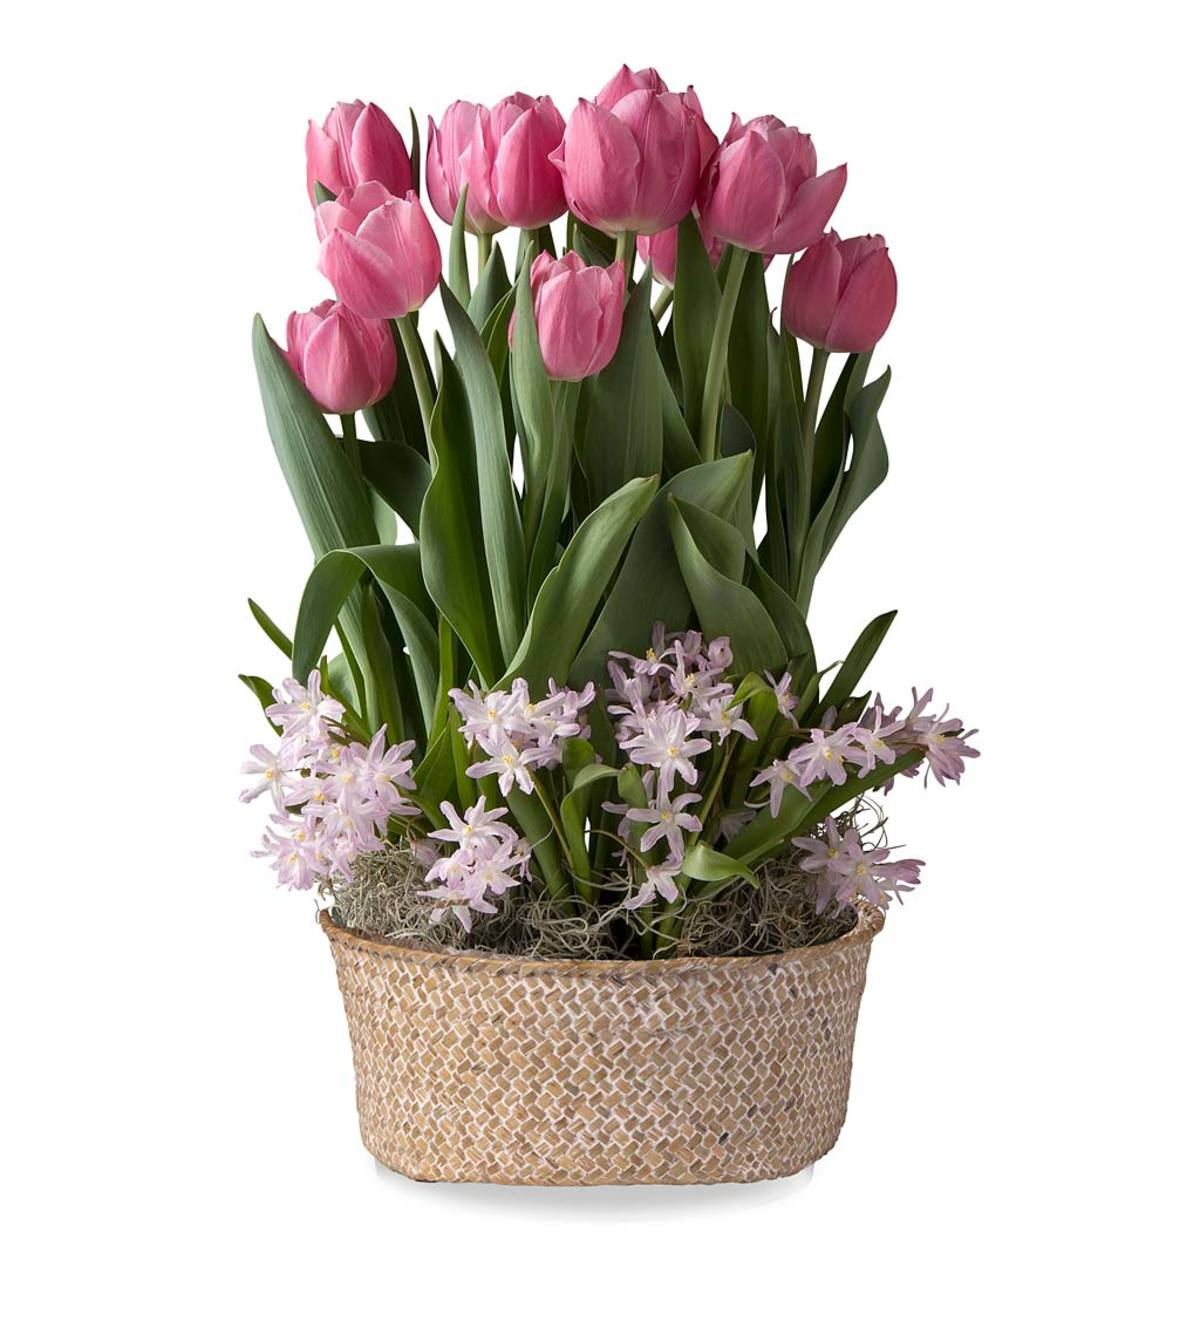 April Early Glory Tulips & Pink Giant Glory-of-the-Snow Delivery in Seagrass Basket